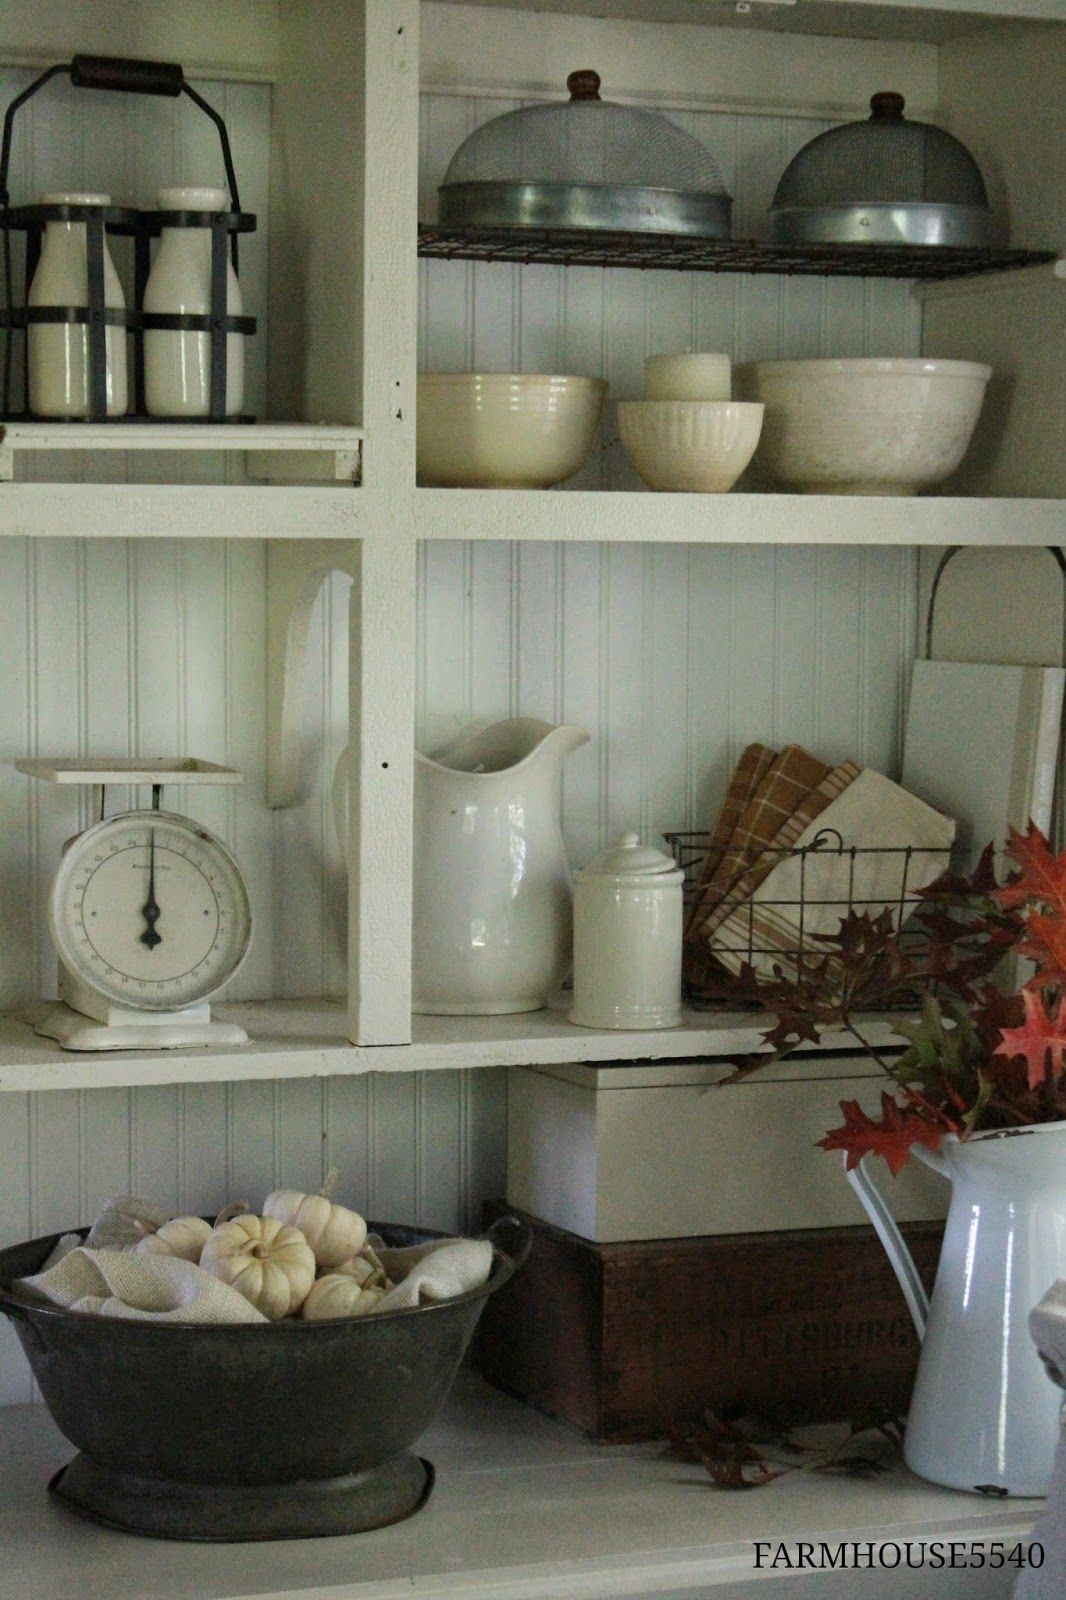 Simple Country Decorating Ideas Farmhouse 5540 Shabby Cottage Farmhouse Haus K Che Haus